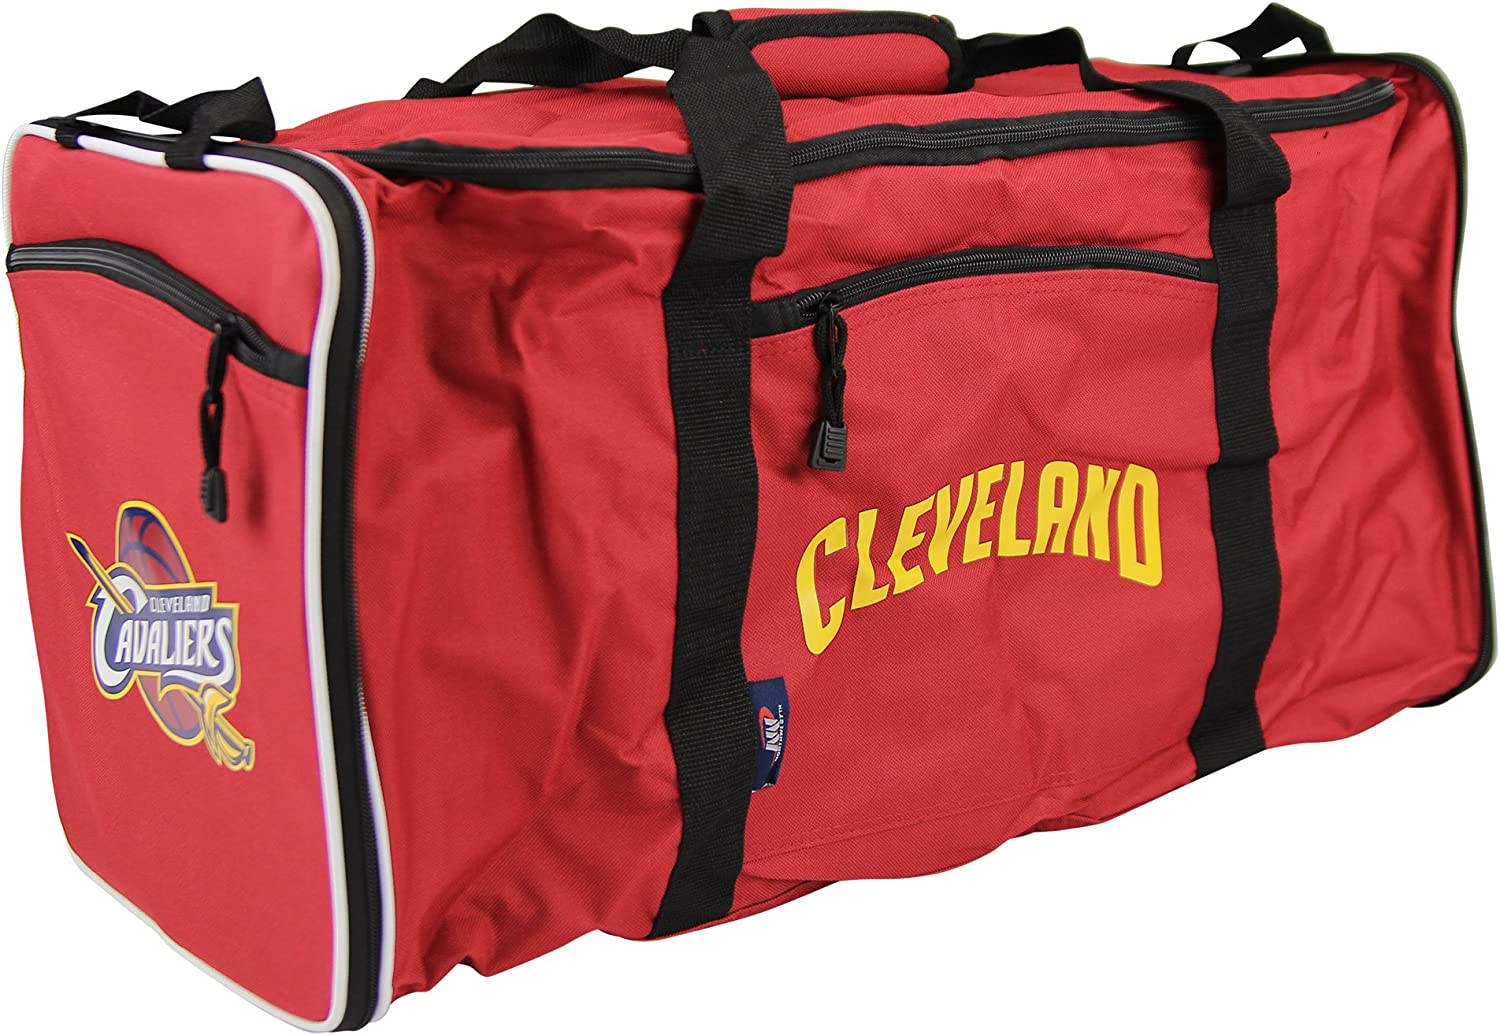 The Northwest Company NBA Team Logo Extended Duffle Bag Cleveland Cavaliers